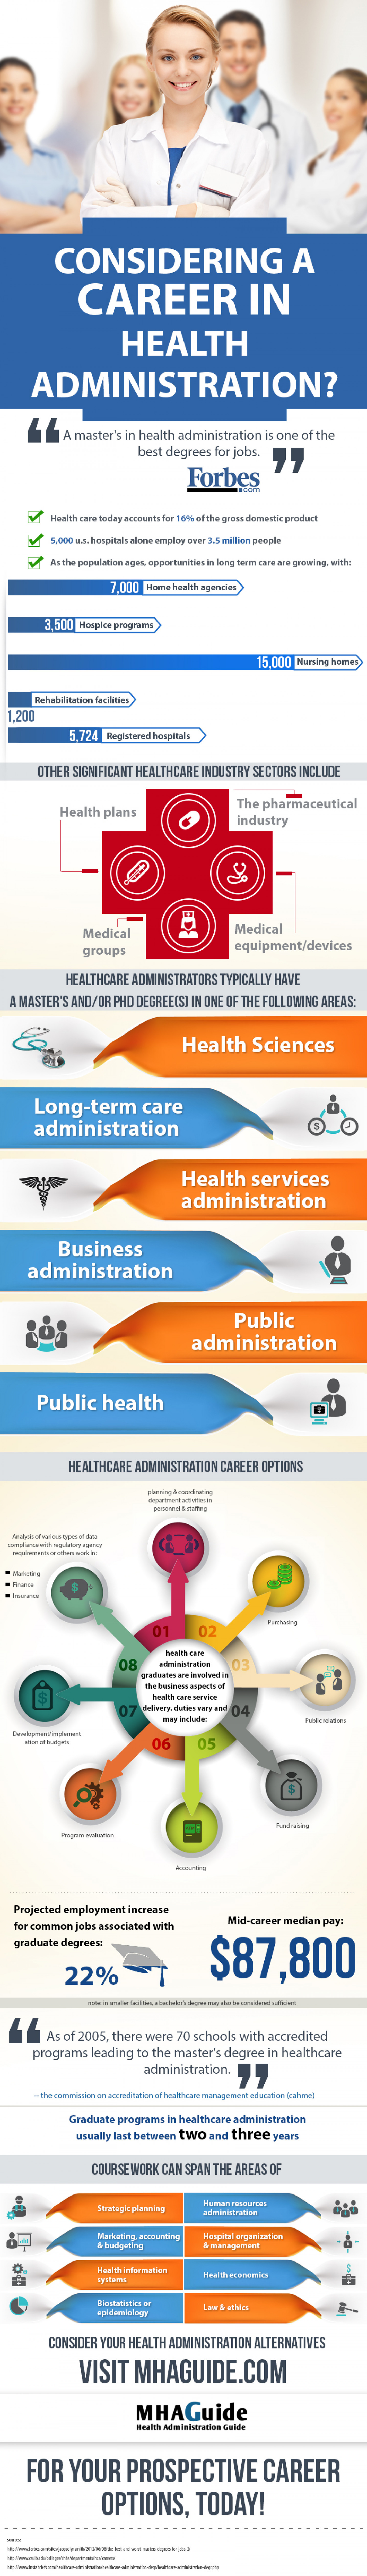 Considering a Carrer in Health Administration? Infographic